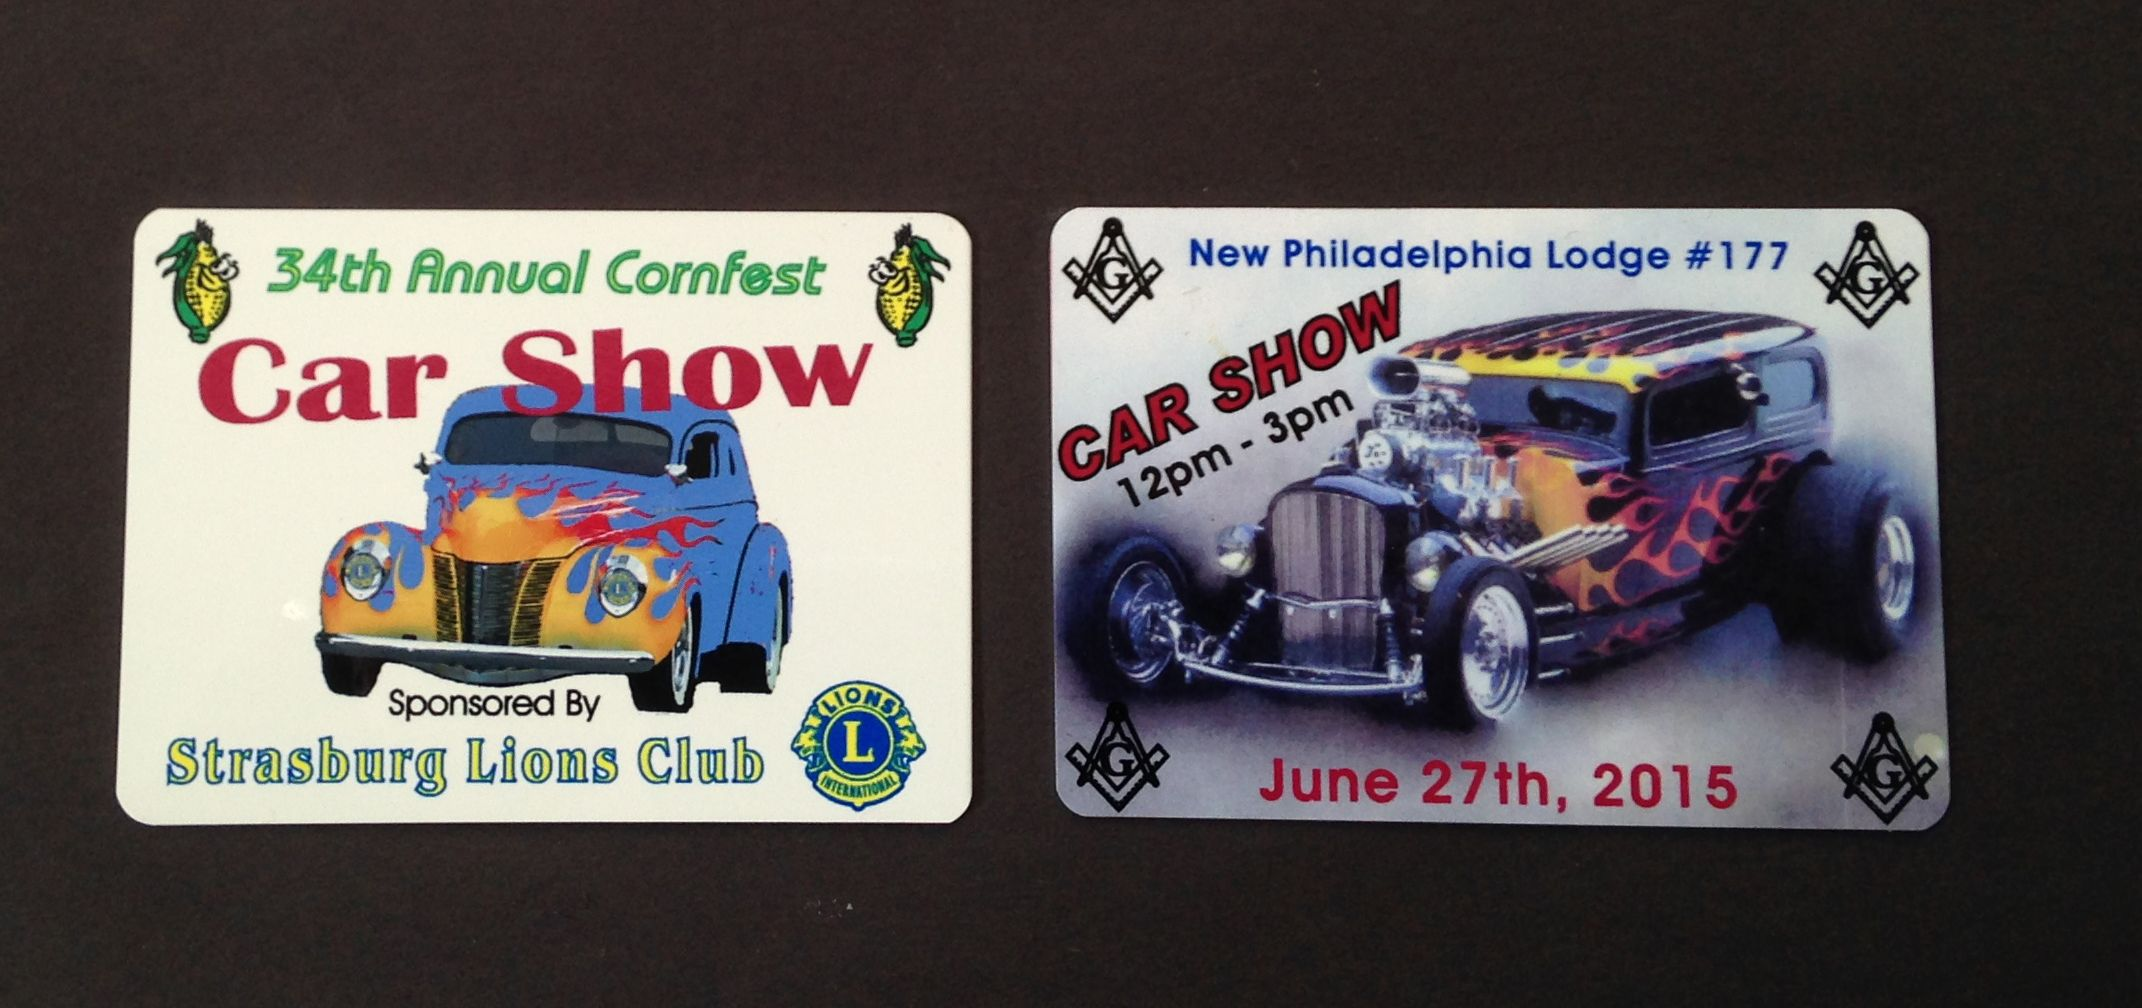 Need Dash Plaques For Car Show We Can Design And Make Ones Just For - Car show plaques